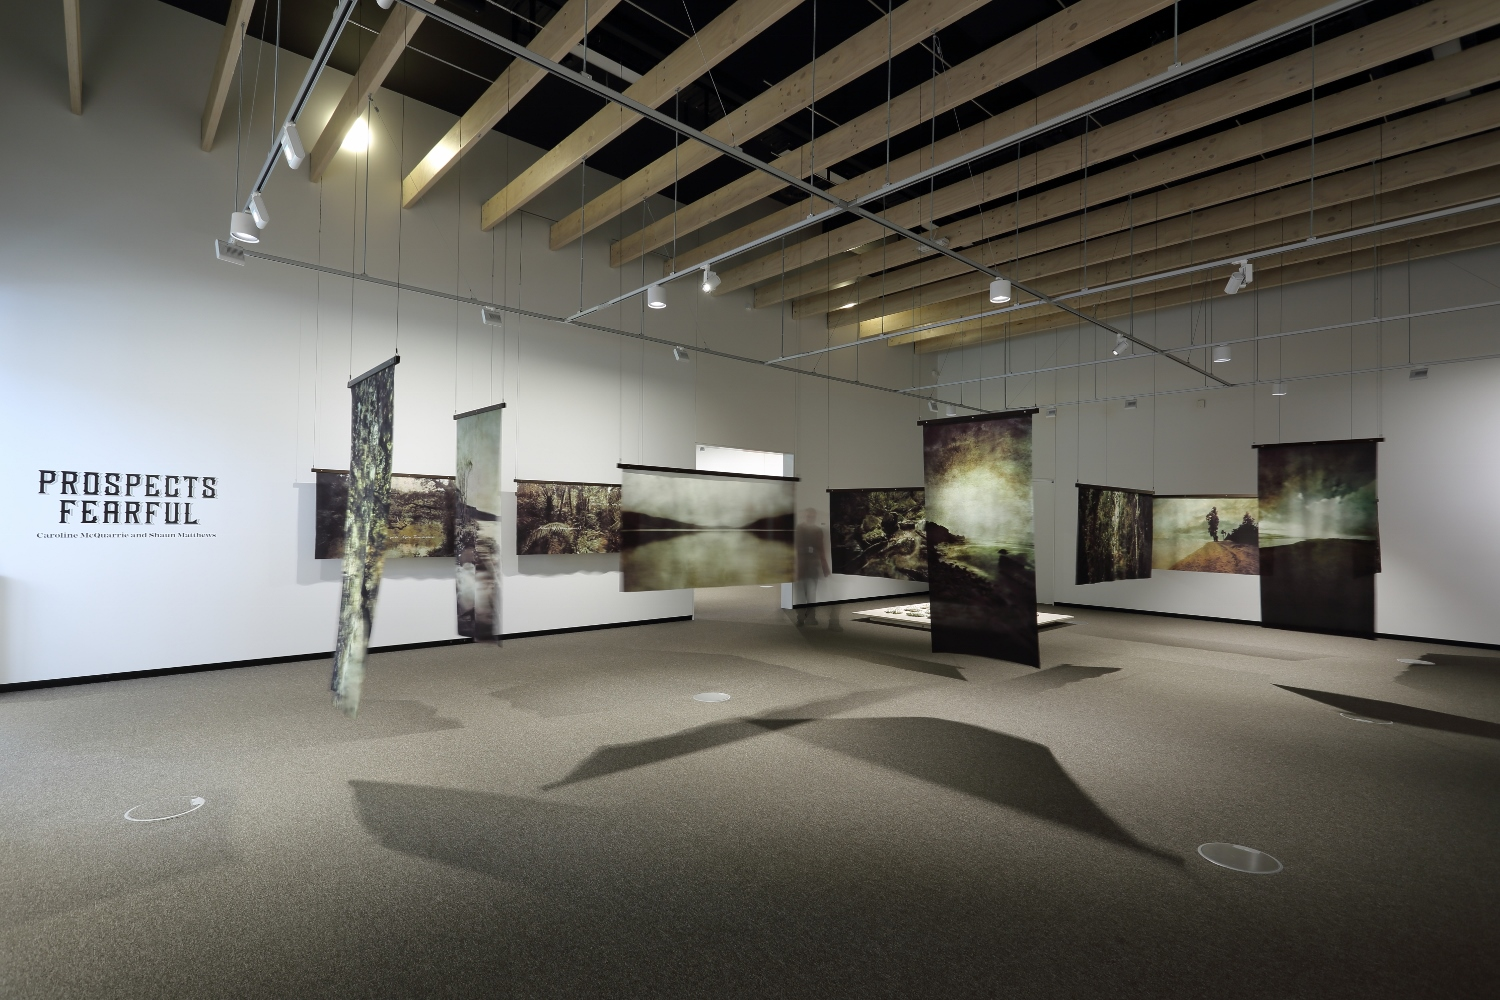 Installation view of the photographs in  Prospects Fearful  by Caroline McQuarrie and Shaun Matthews. (Photograph by John-Paul Pochin).